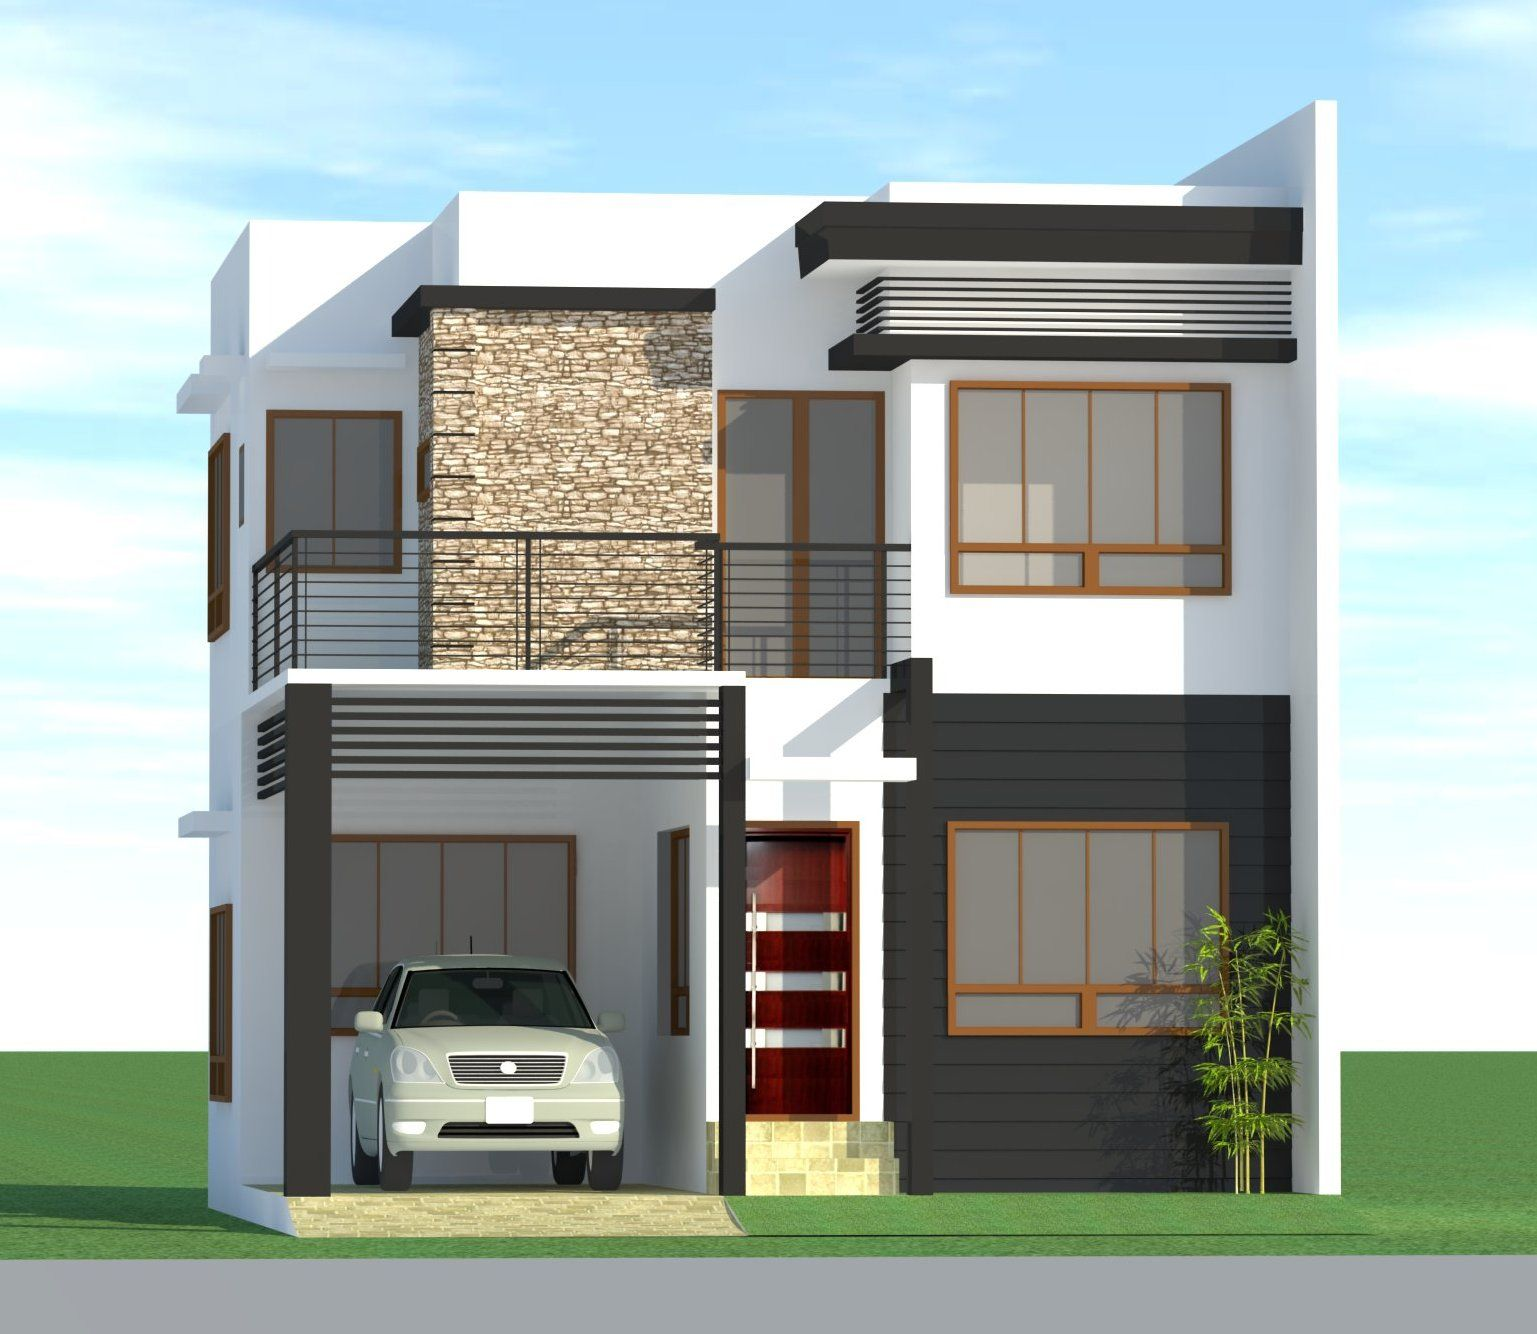 Front Elevation Molding : Philippines house design images home ideas